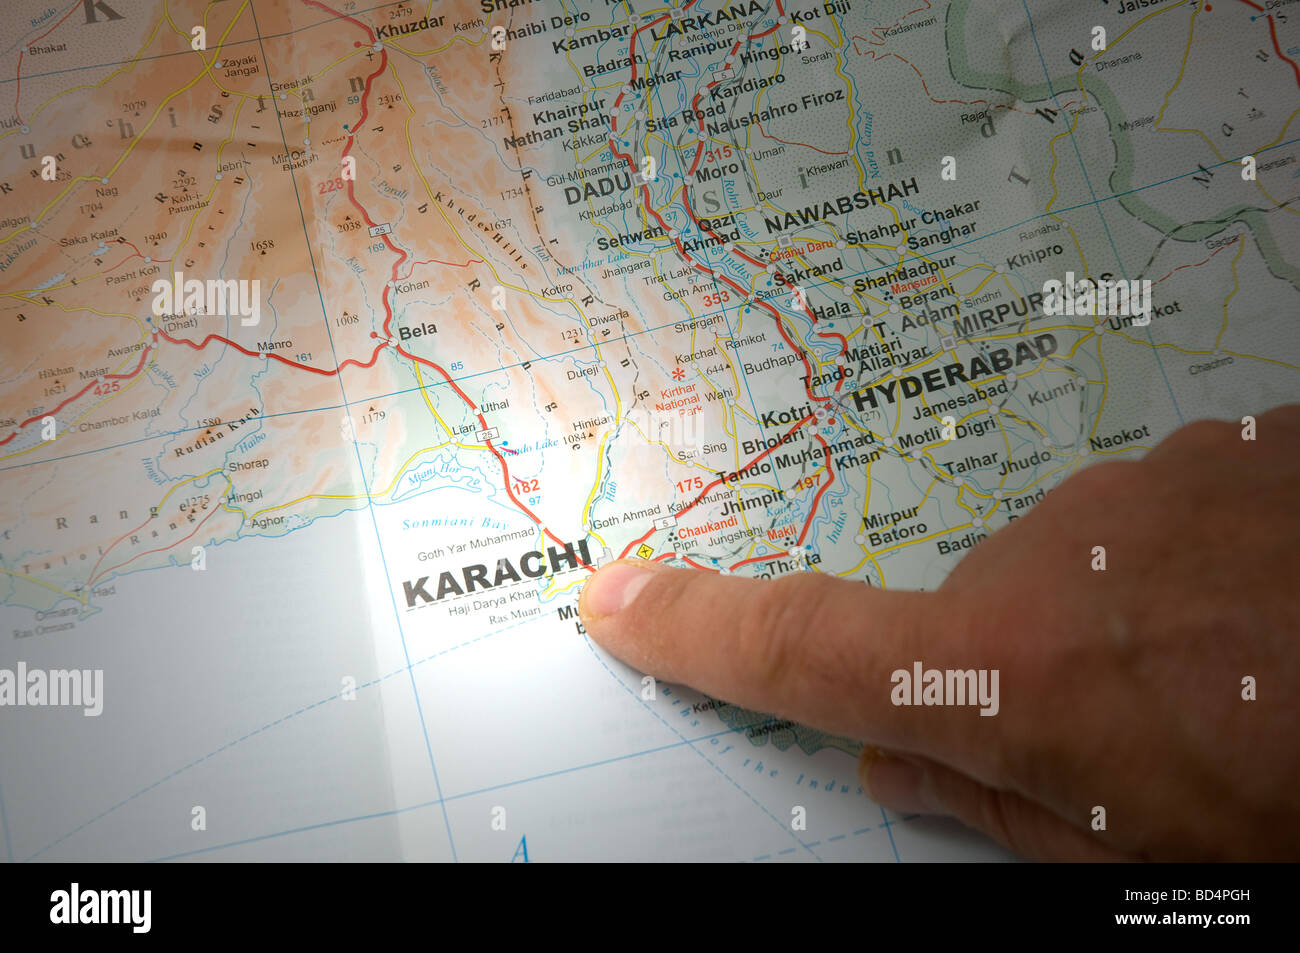 Focus on Pakistan - Stock Image